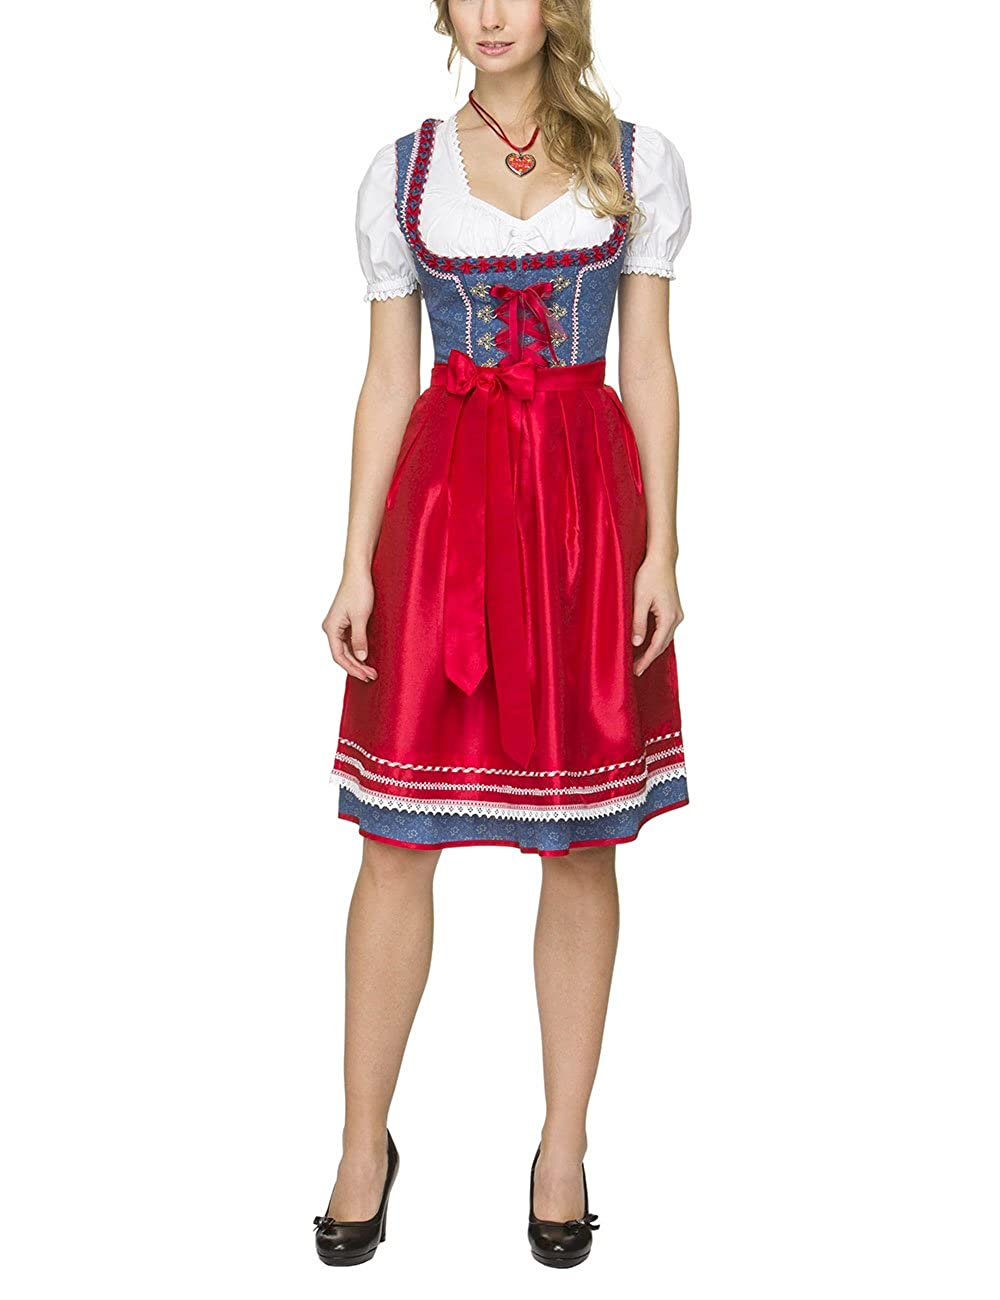 Stockerpoint Damen Dirndl Ricarda Blau (Blue) 36 Original Stockerpoint GmbH B01CCHP2LUBlau (Blue)36